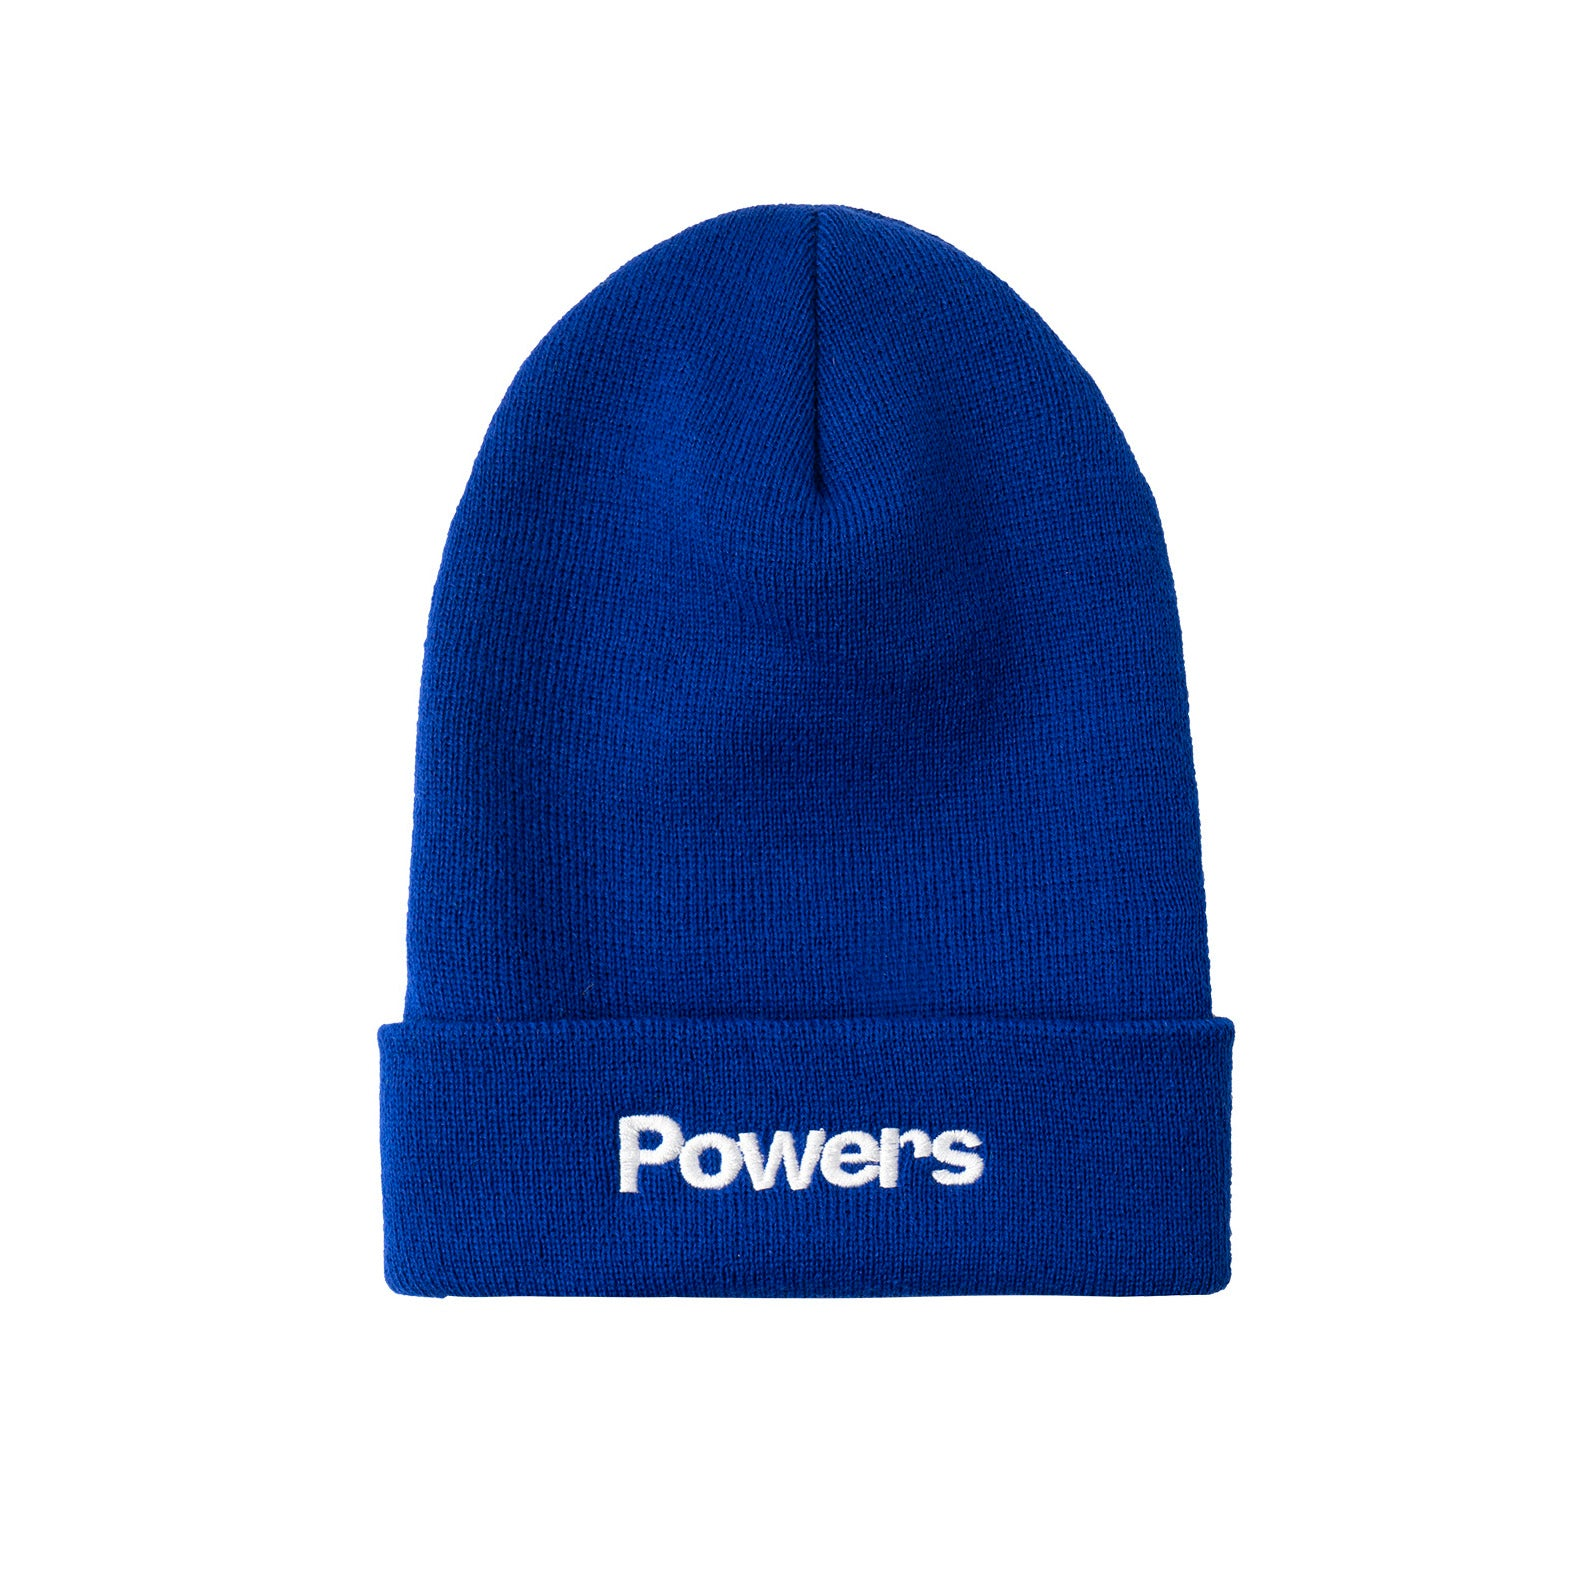 POWERS SIMPLE LOGO BEANIE